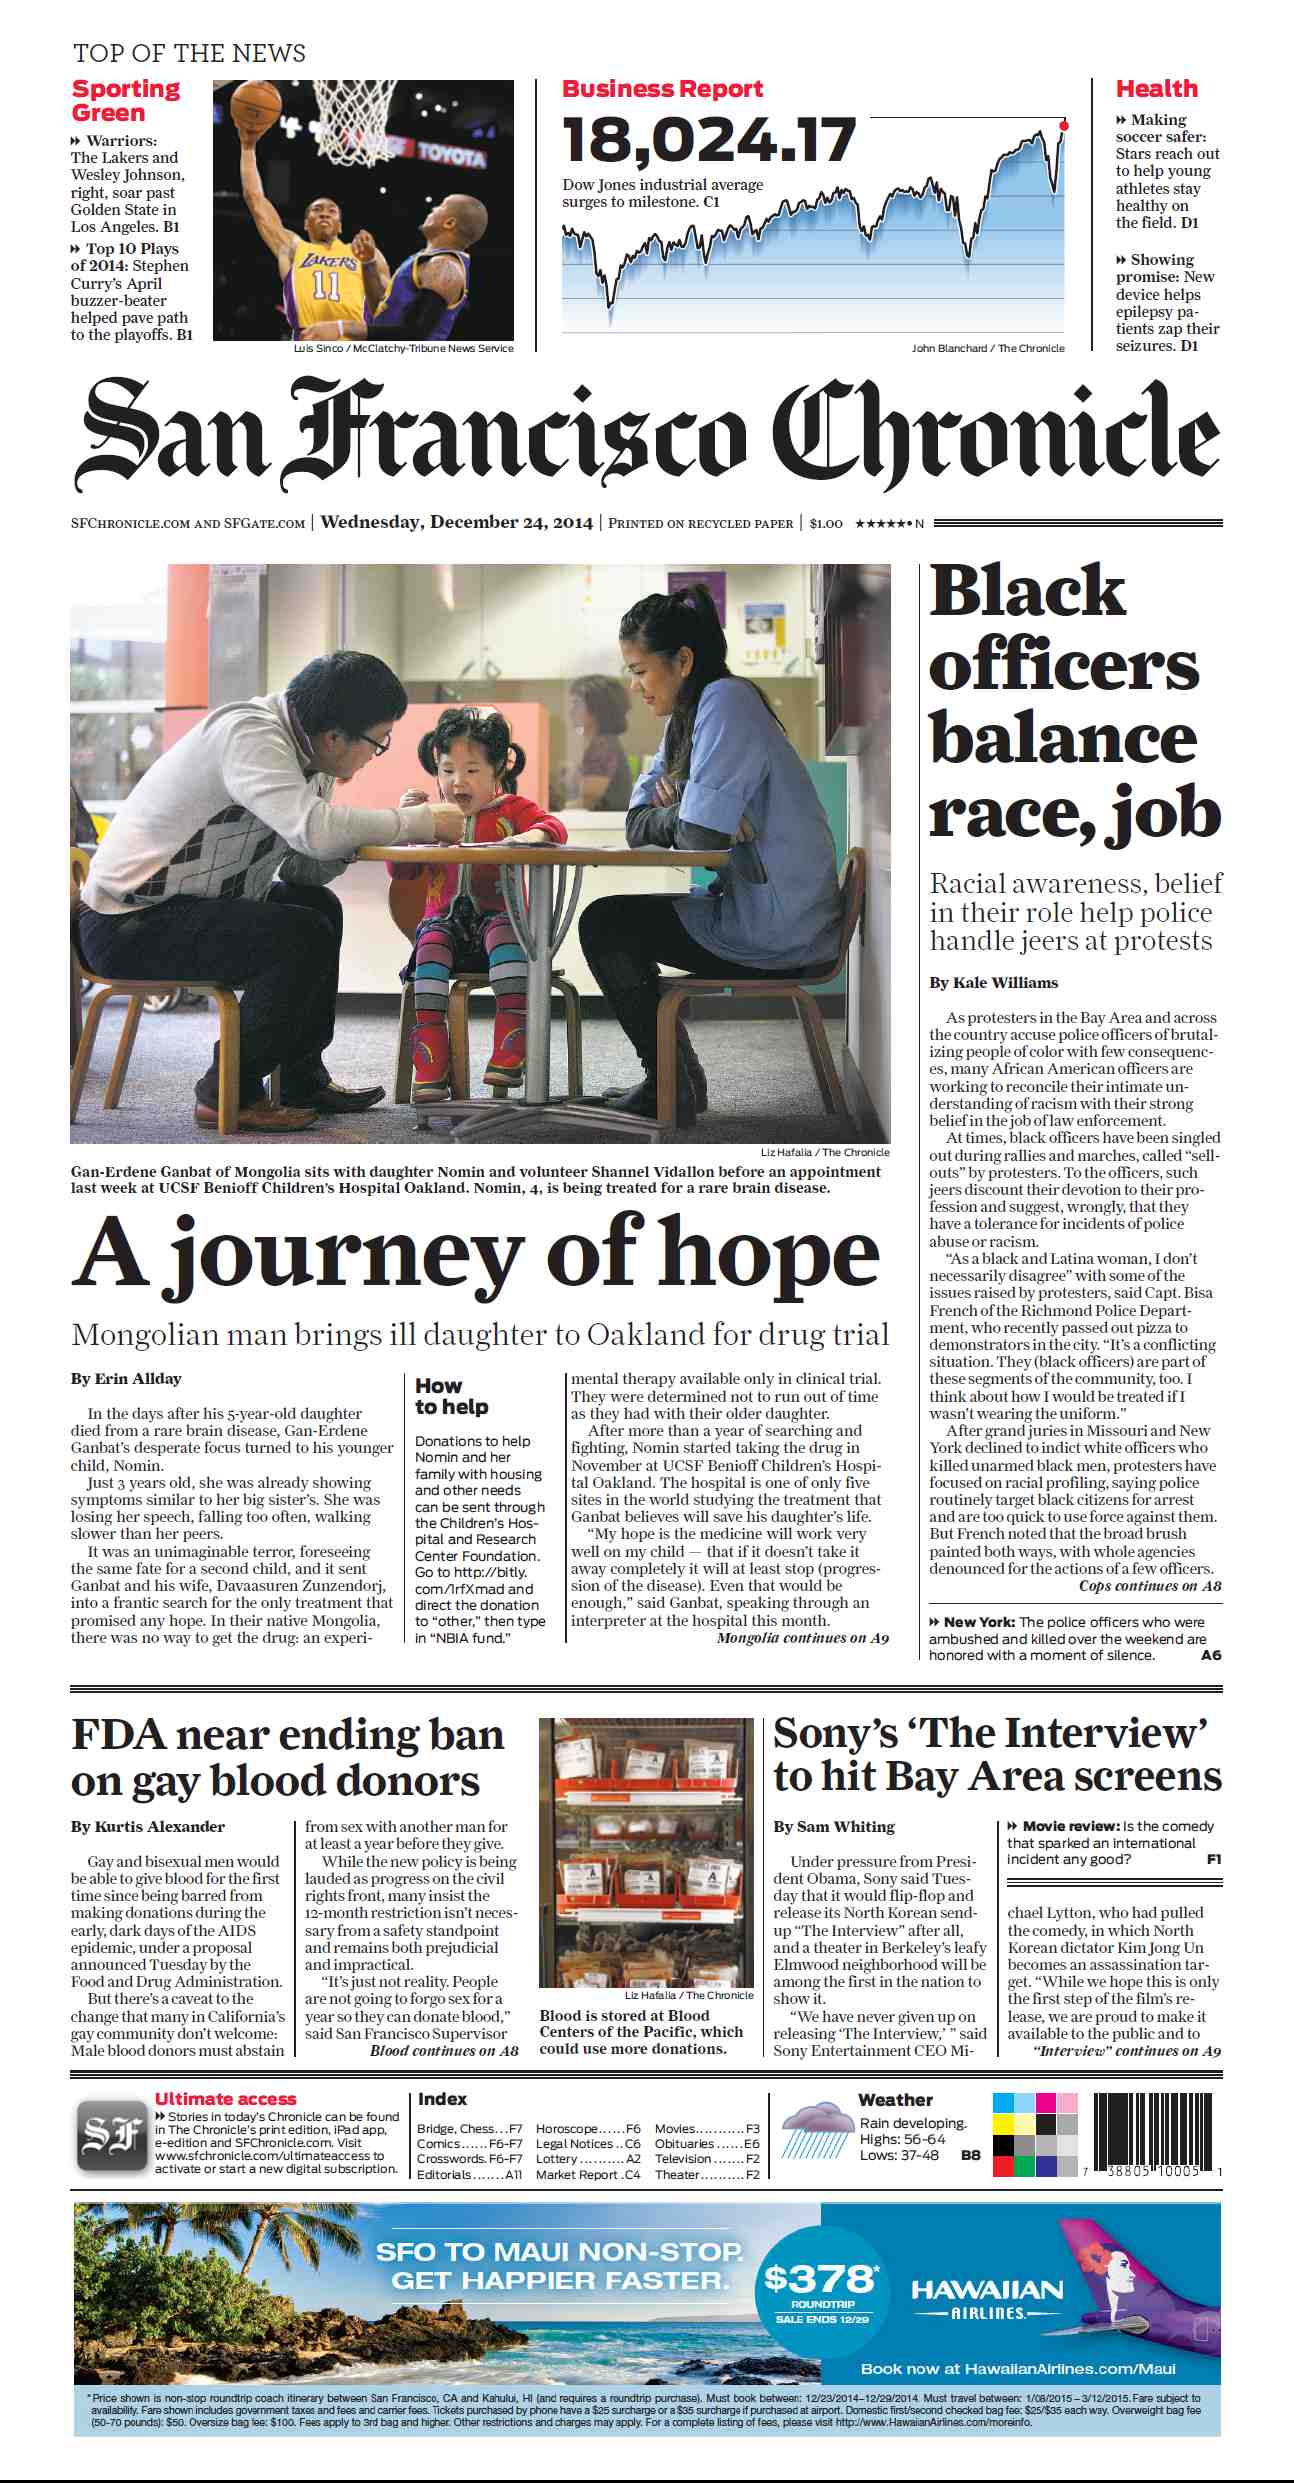 San Francisco Chronicle - December 24, 2014 free download